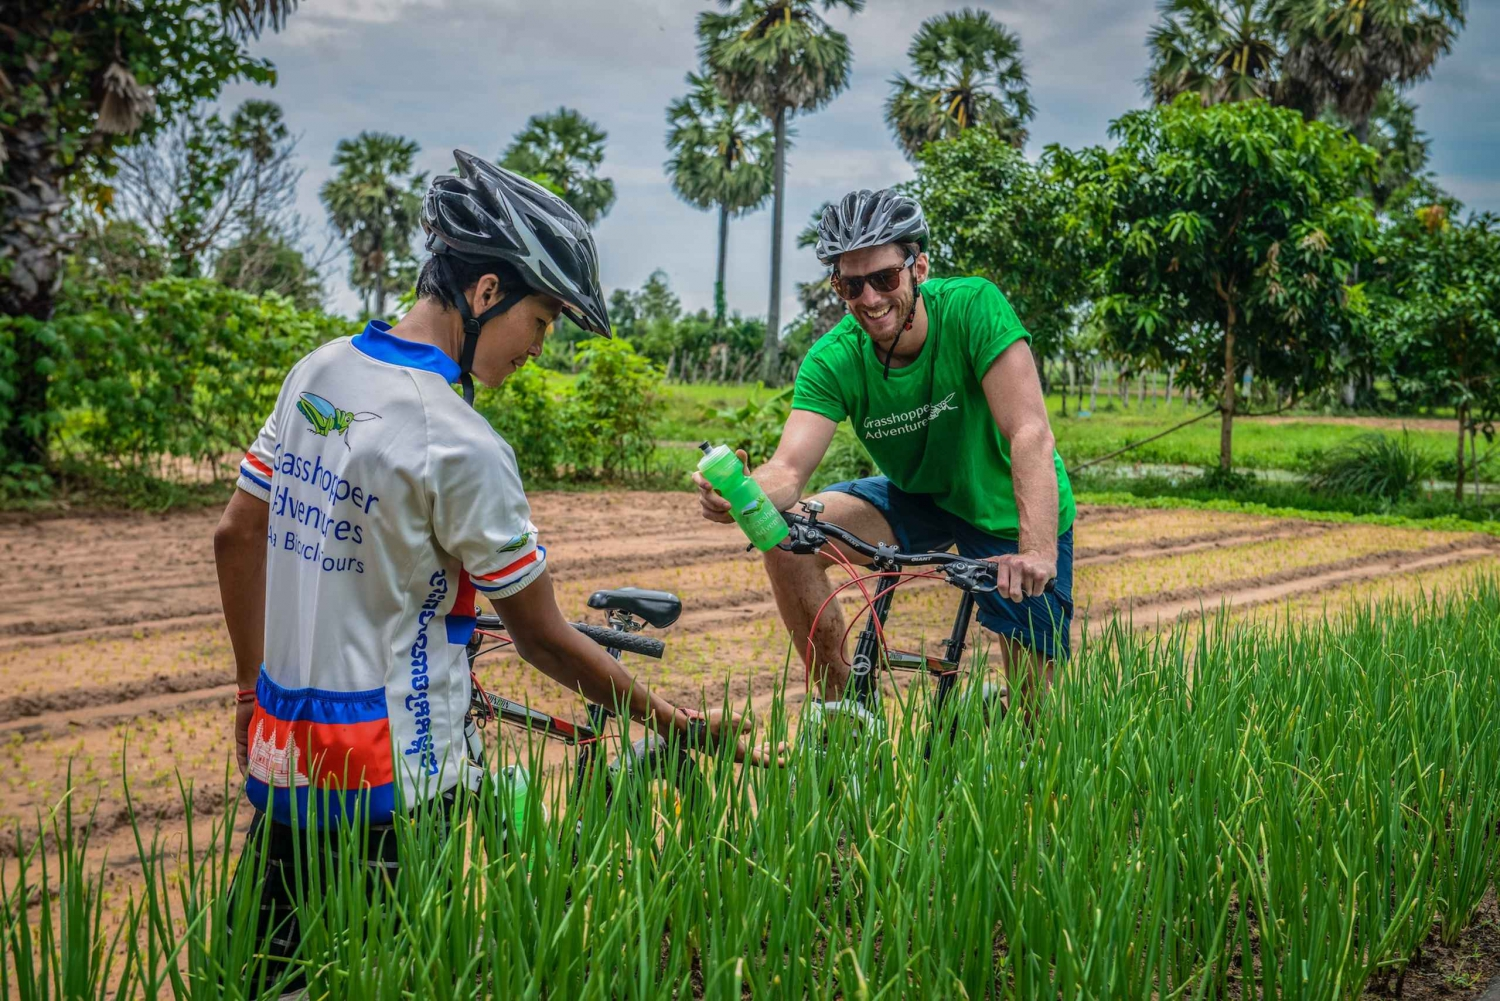 Mekong Islands Cycle Tour in Phnom Penh